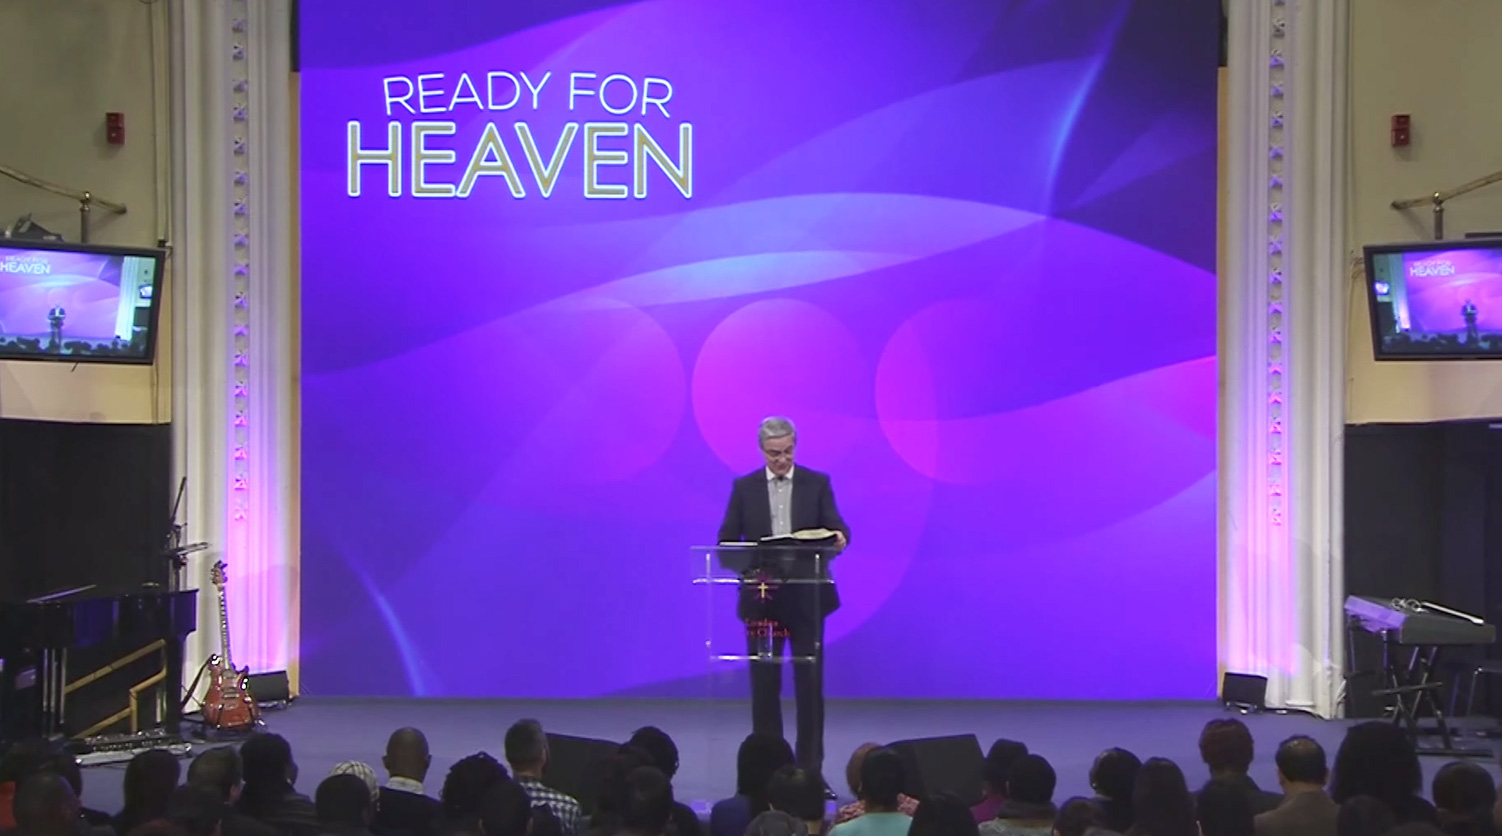 Getting Ready for Heaven